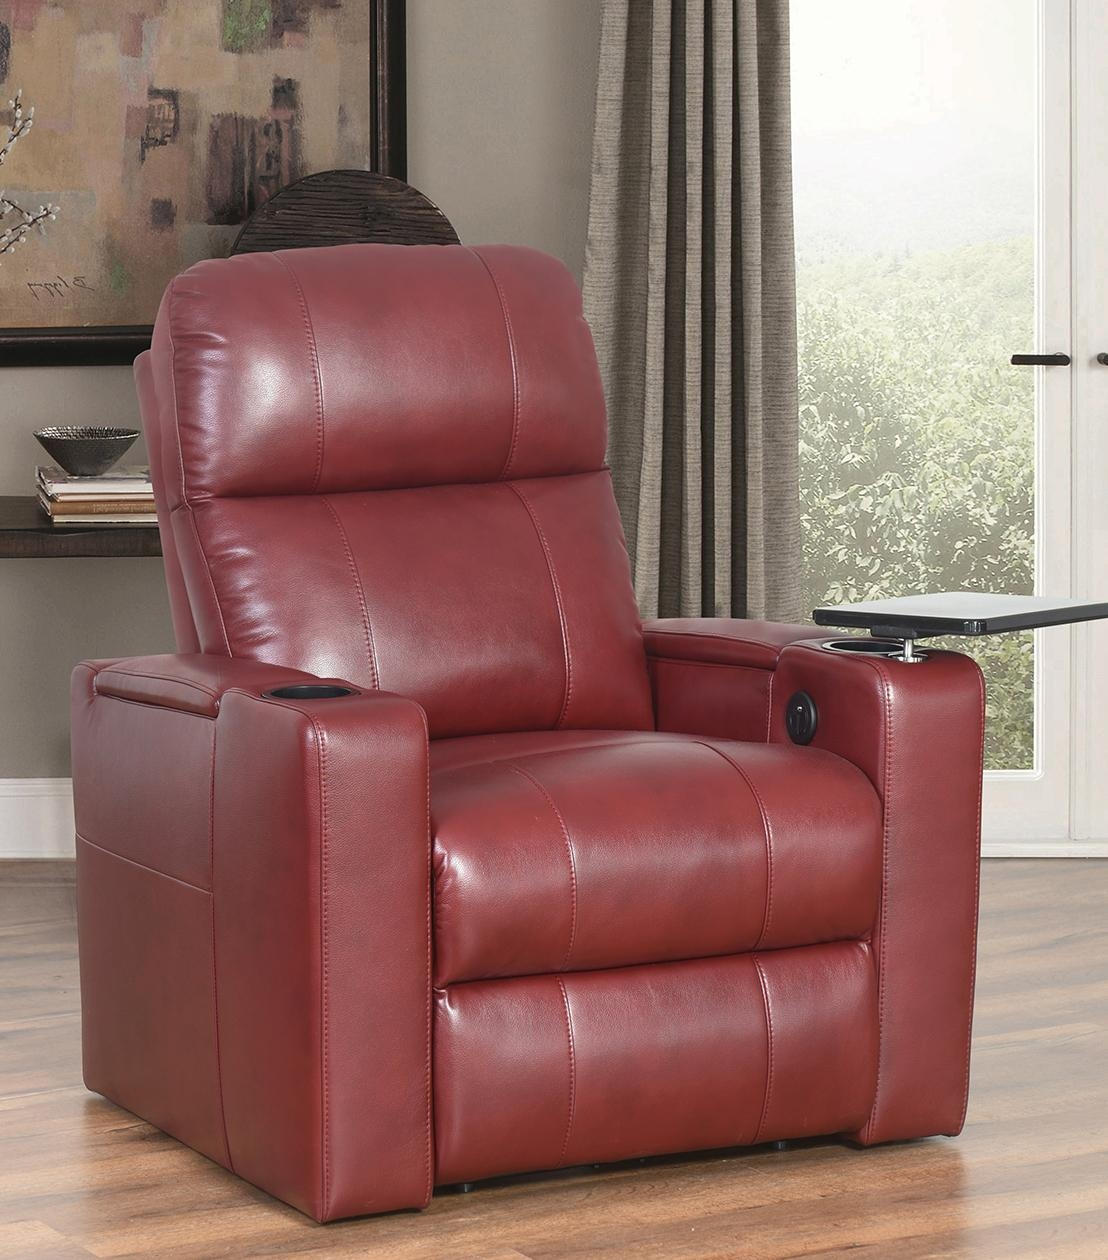 Recliners In Abbyson Recliners (Image 17 of 20)